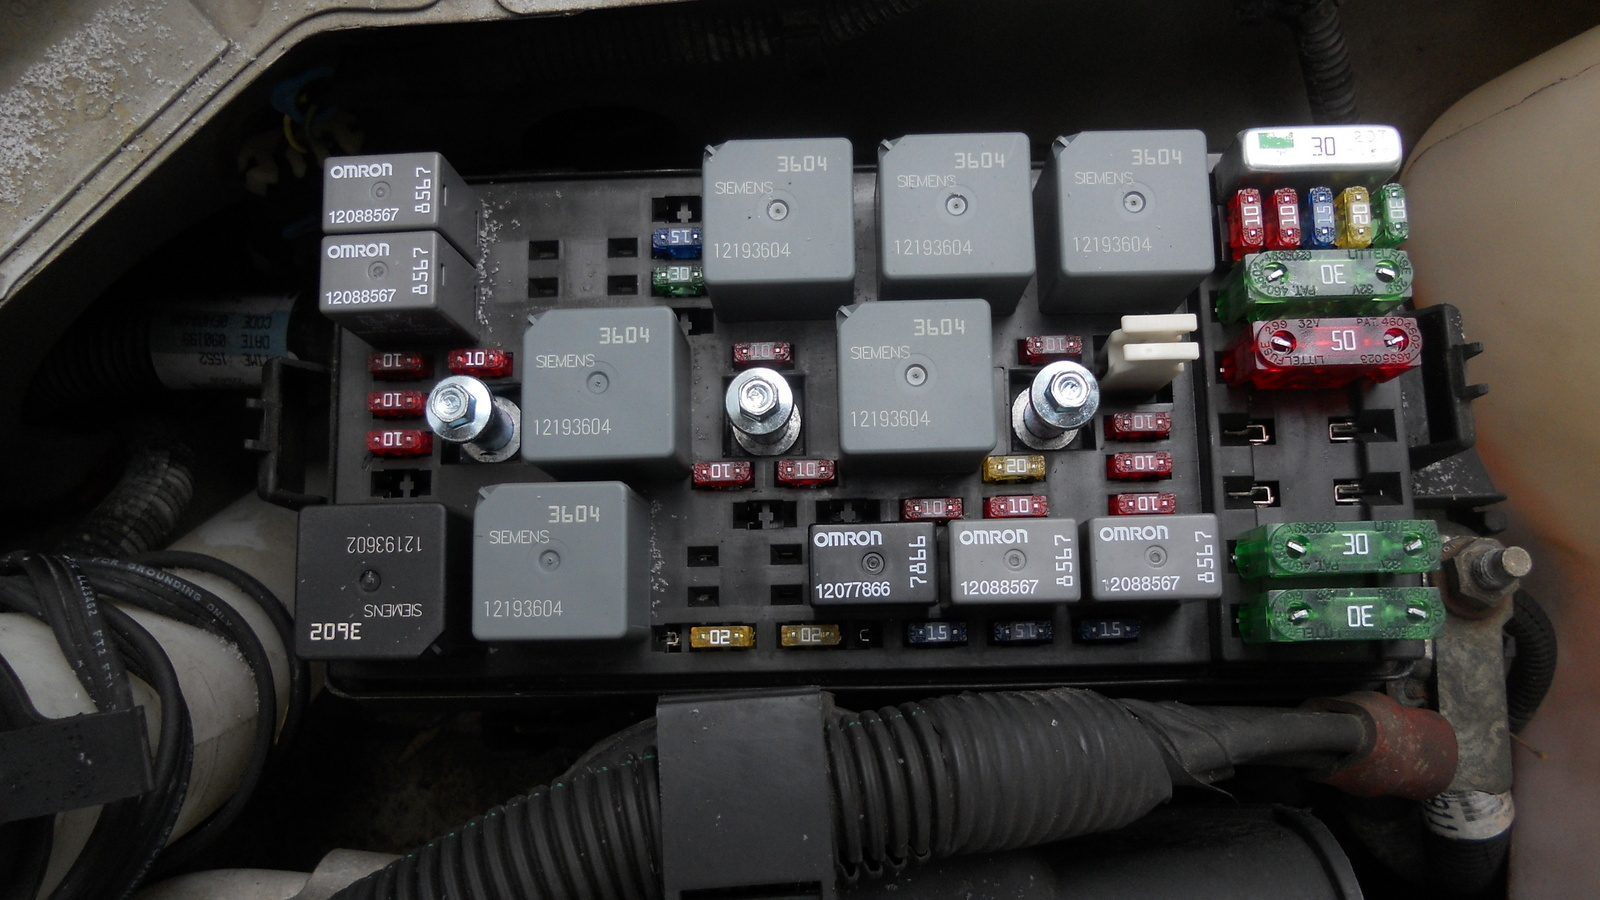 Zlvpecrmbldldljj besides Buick Rendezvous Fuse Box furthermore Pic X besides Maxresdefault also Gmc Hd Sierra Fuse Box. on 2005 buick lesabre fuse box diagram